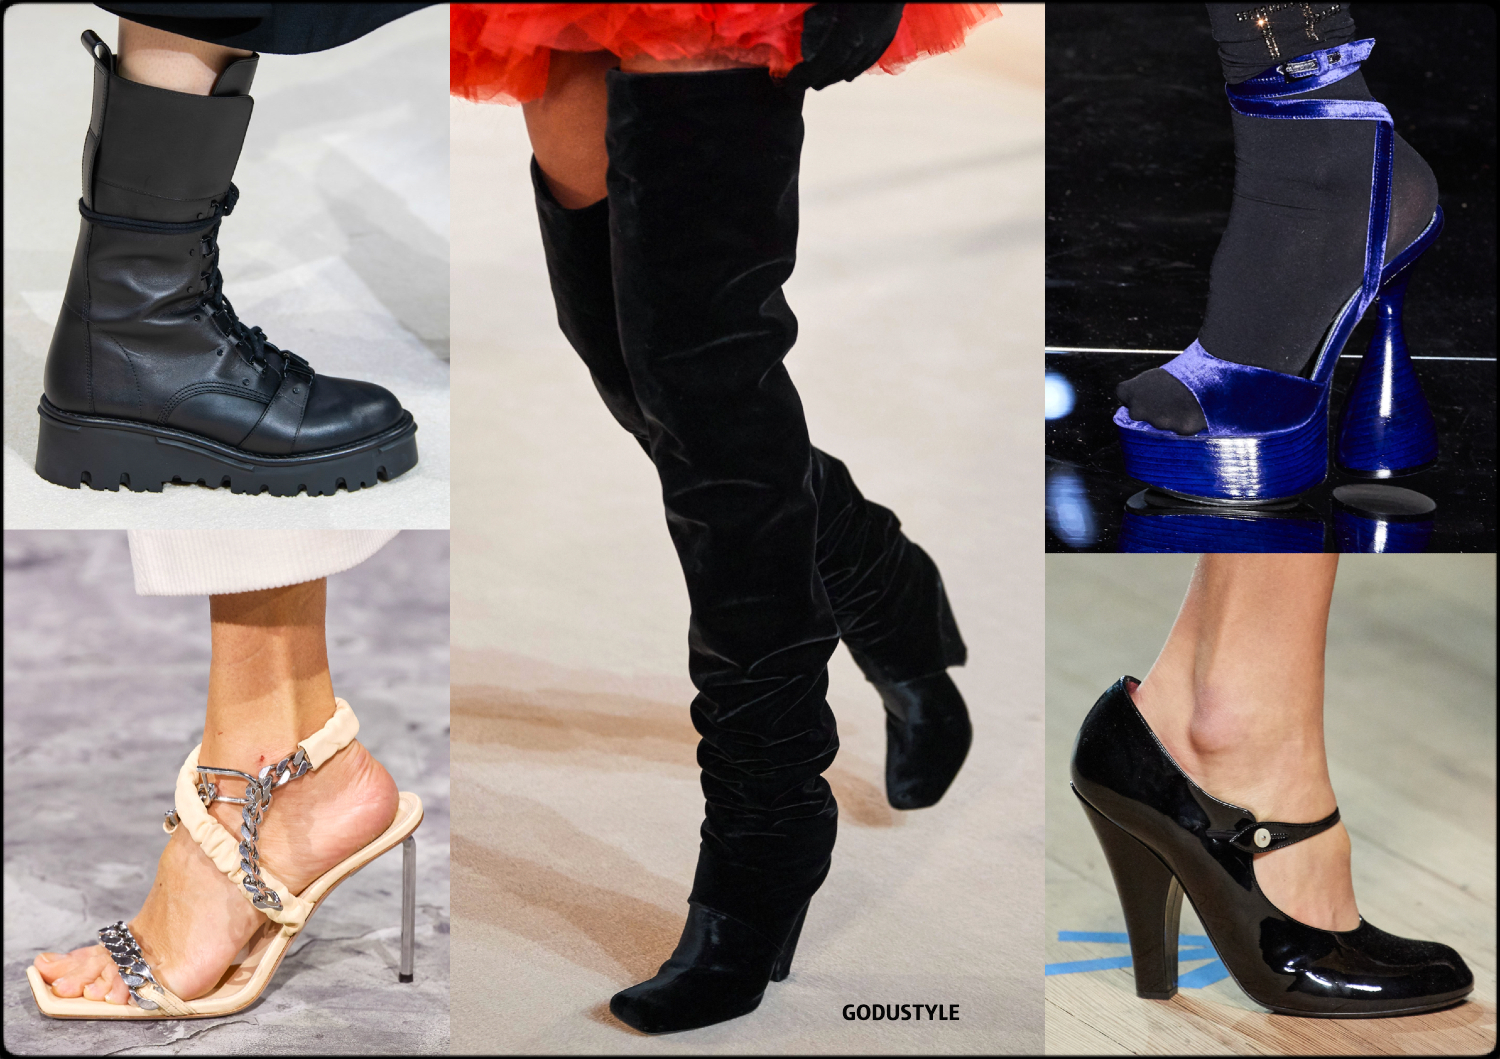 shoes-fashion-fall-winter-2020-2021-trend-look-style-details-moda-tendencia-zapatos-godustyle